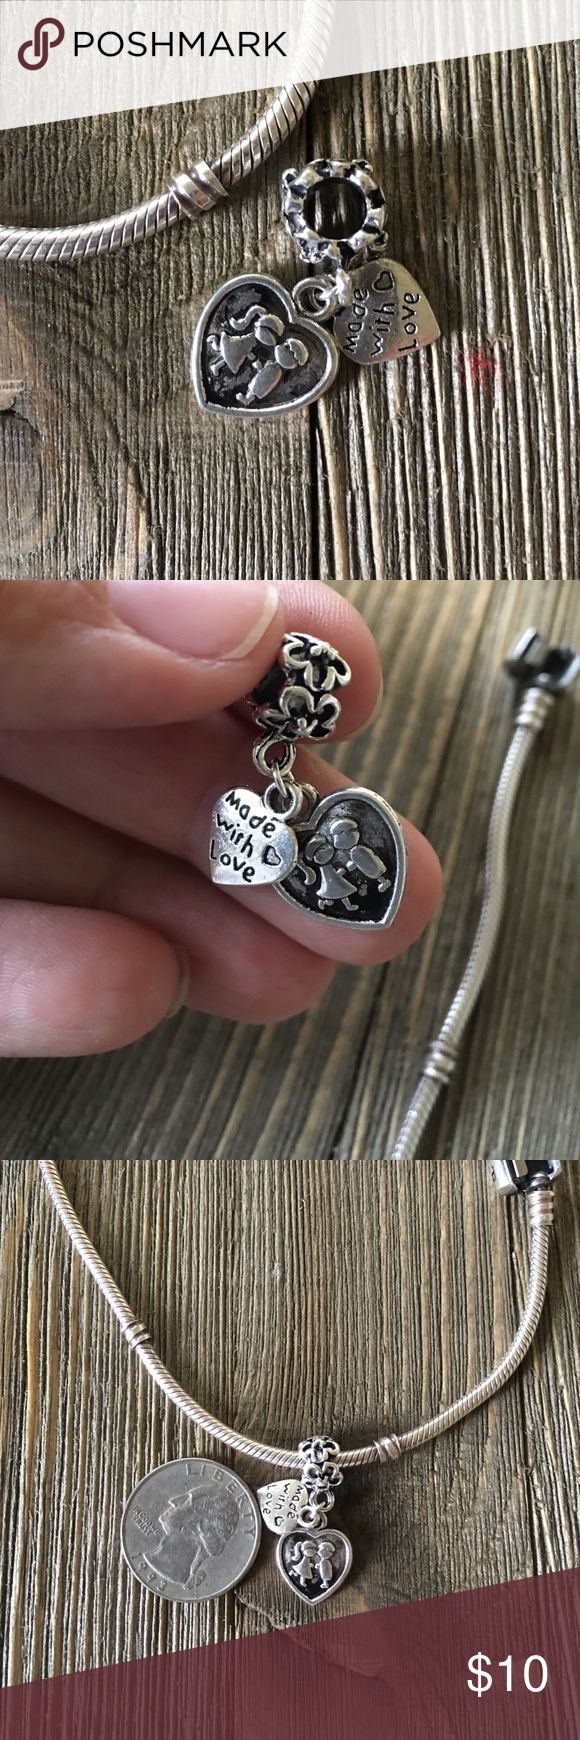 ❤️Made with Love Charm❤️ Stunning silver plated double charm. It has 2 dangling charms with a beautiful True Love meaning! 💫NO BRAND NAME but Fits Pandora style bracelets...picture is of my authentic Pandora bracelet with the charm so you can see how it fits. Quarter for size reference. ❤️PRICE FIRM unless BUNDLED❤️💝💝Buy 1, get one 50% off💝💝 Jewelry Bracelets